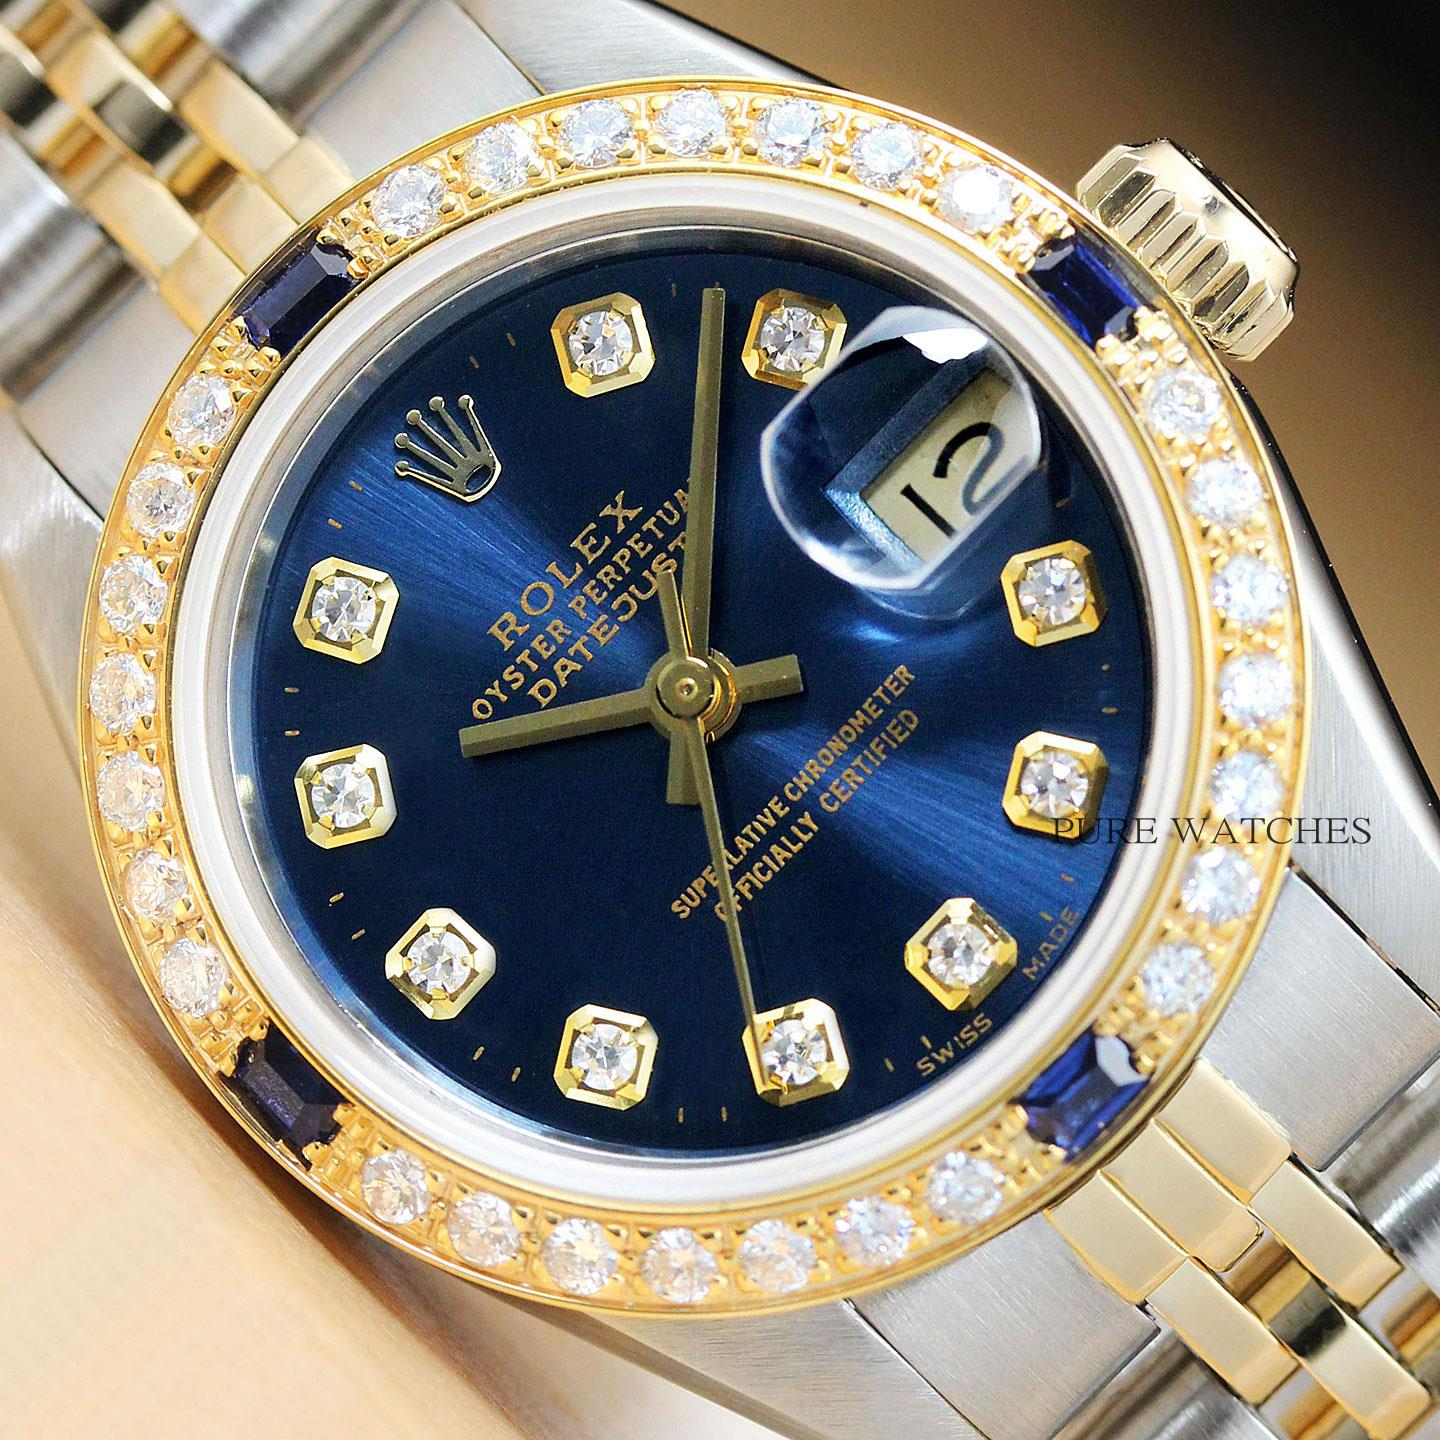 Rolex Ladies Datejust 18k Yellow Gold Diamond Sapphire Amp Steel Blue Dial Watch 717449281050 Ebay